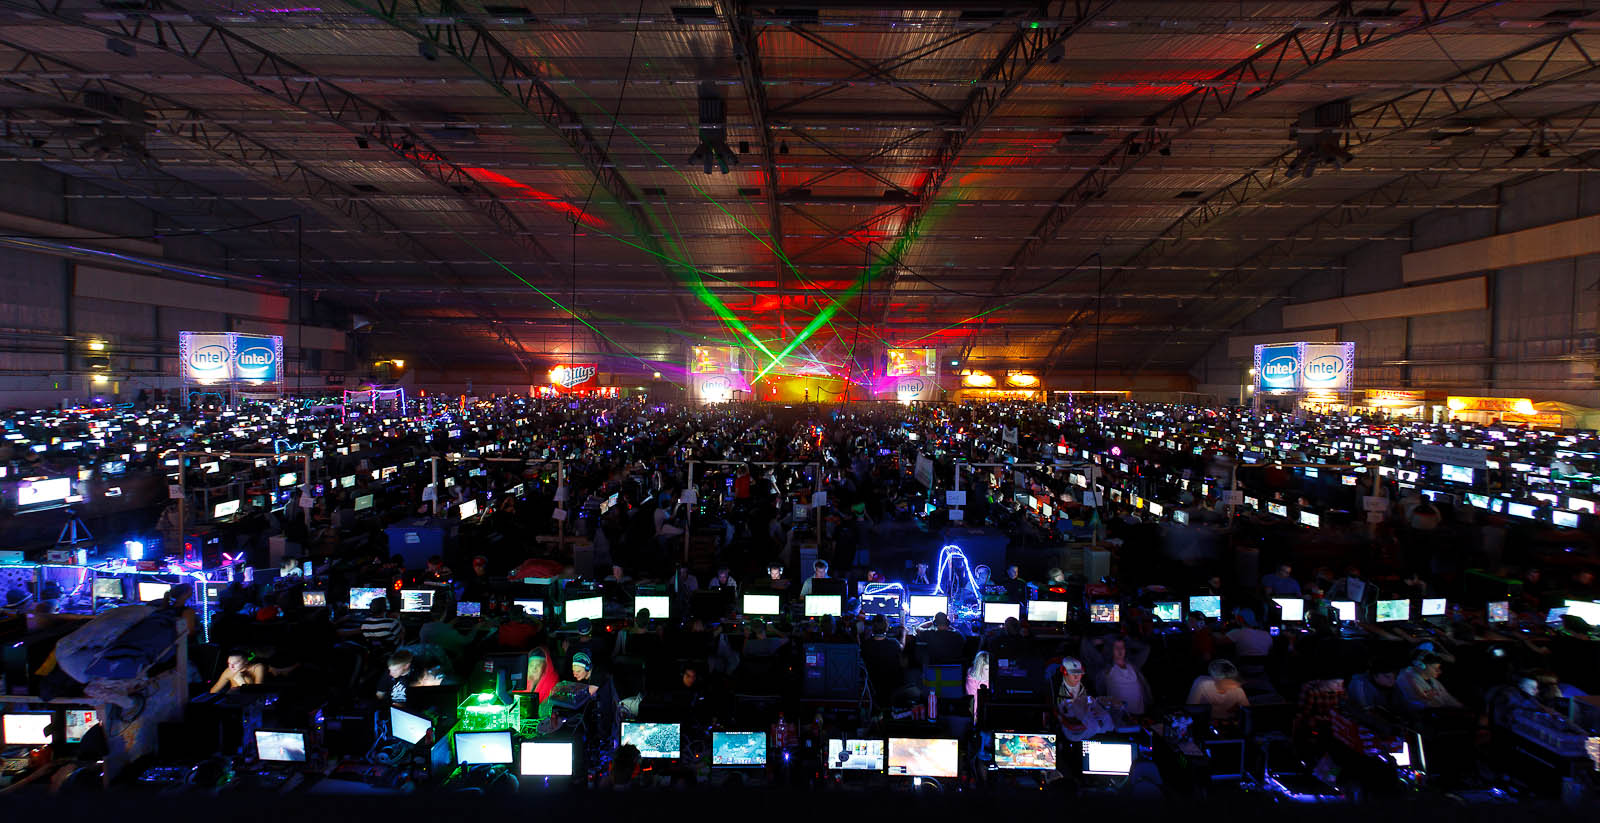 Laser show in Hall D